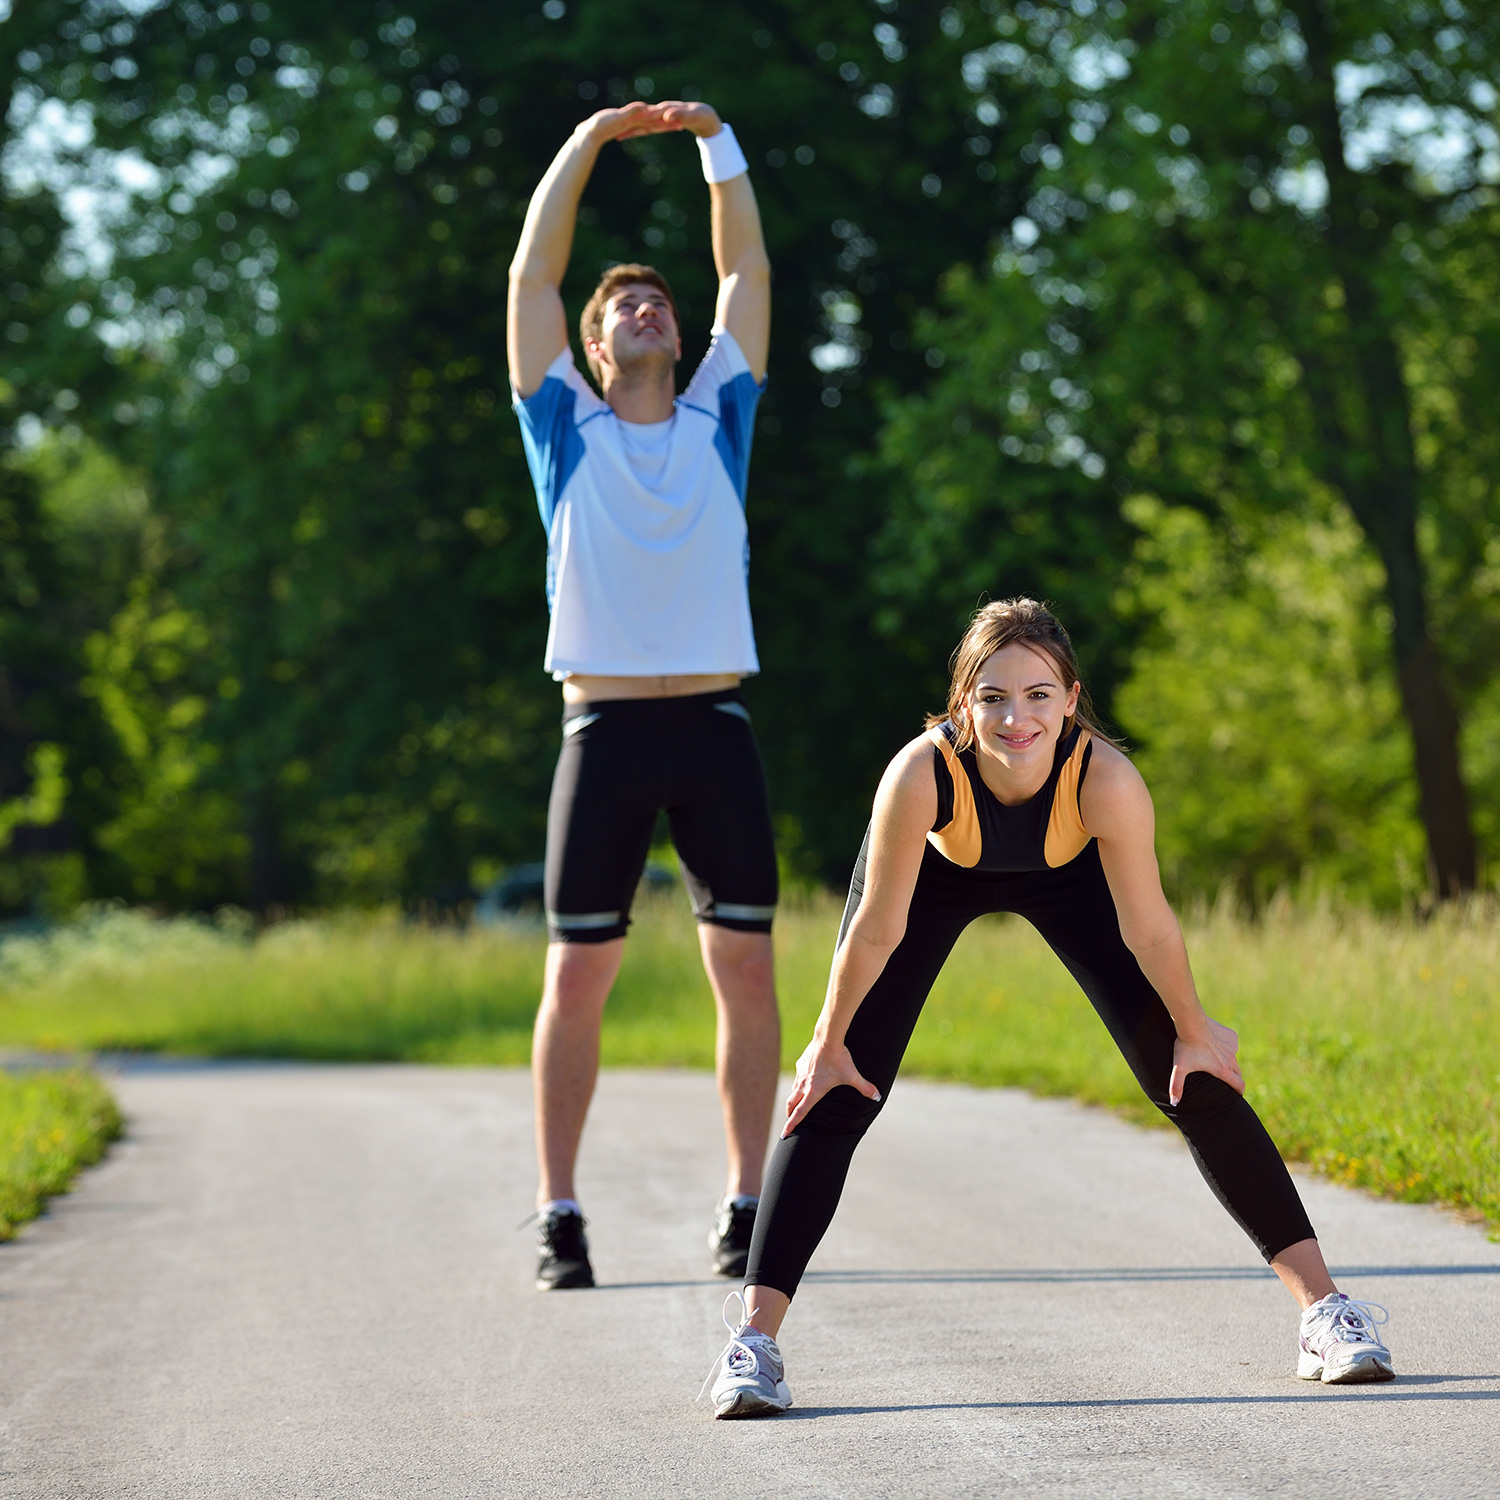 running-couple-exercise-stretching-park